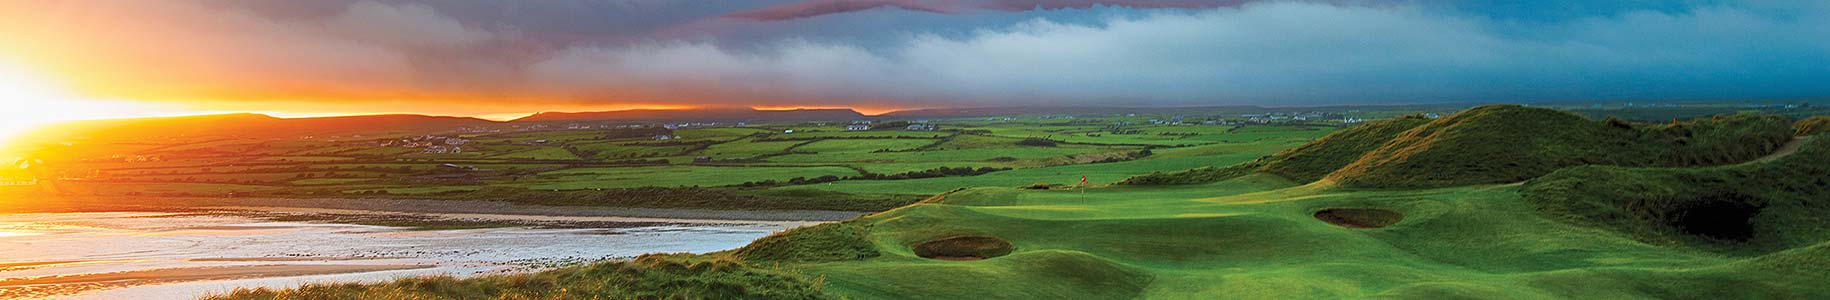 Lahinch Golf Course at sunset